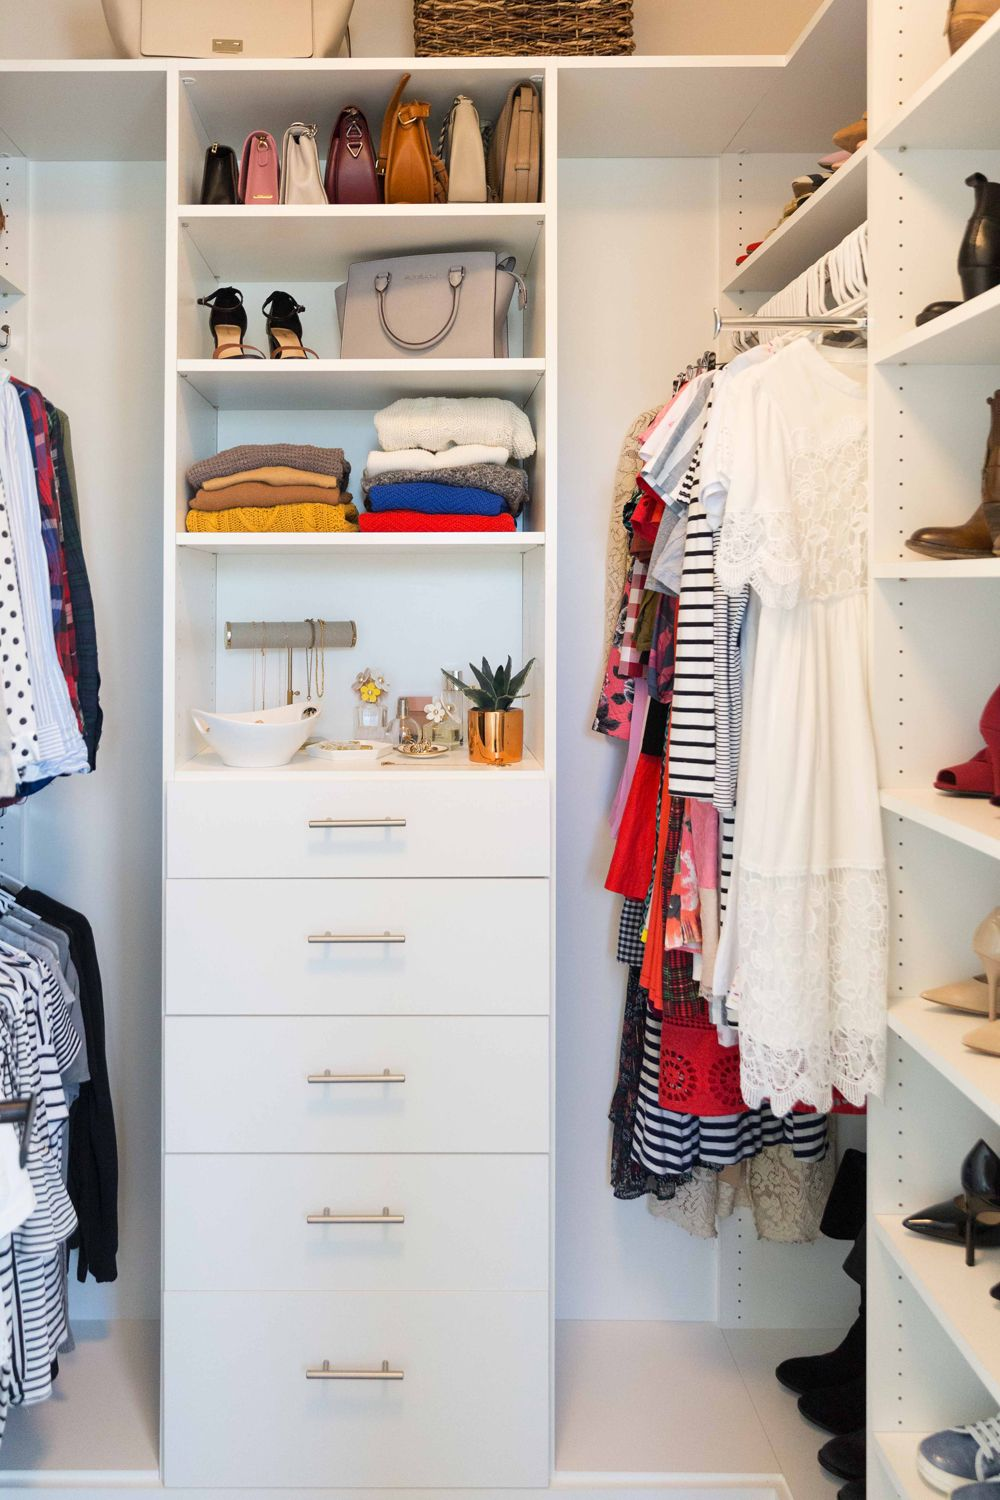 My Closet Reveal 6 Ways To Maximize Closet Space How To Organize Your Closet Spring Cleaning Bedroom Cleaning Hacks Bedroom